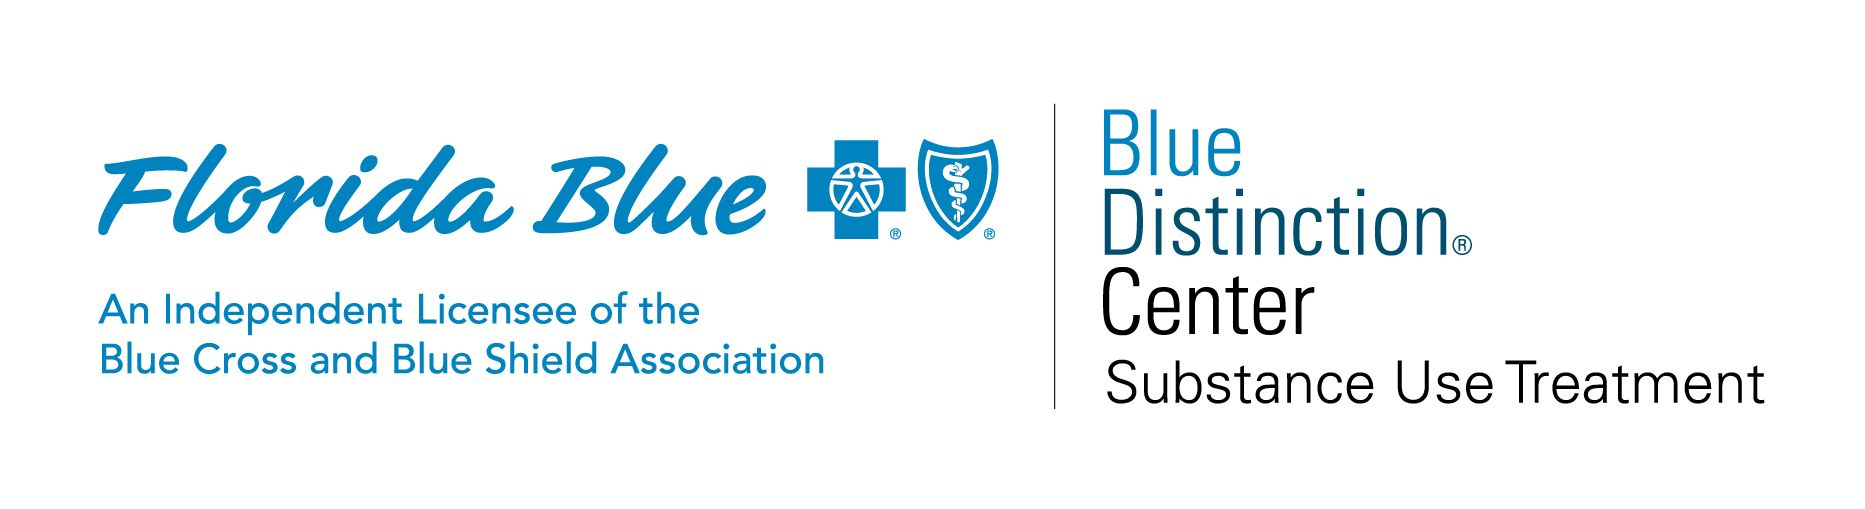 Blue Distinction Center-Substance Use Treatment